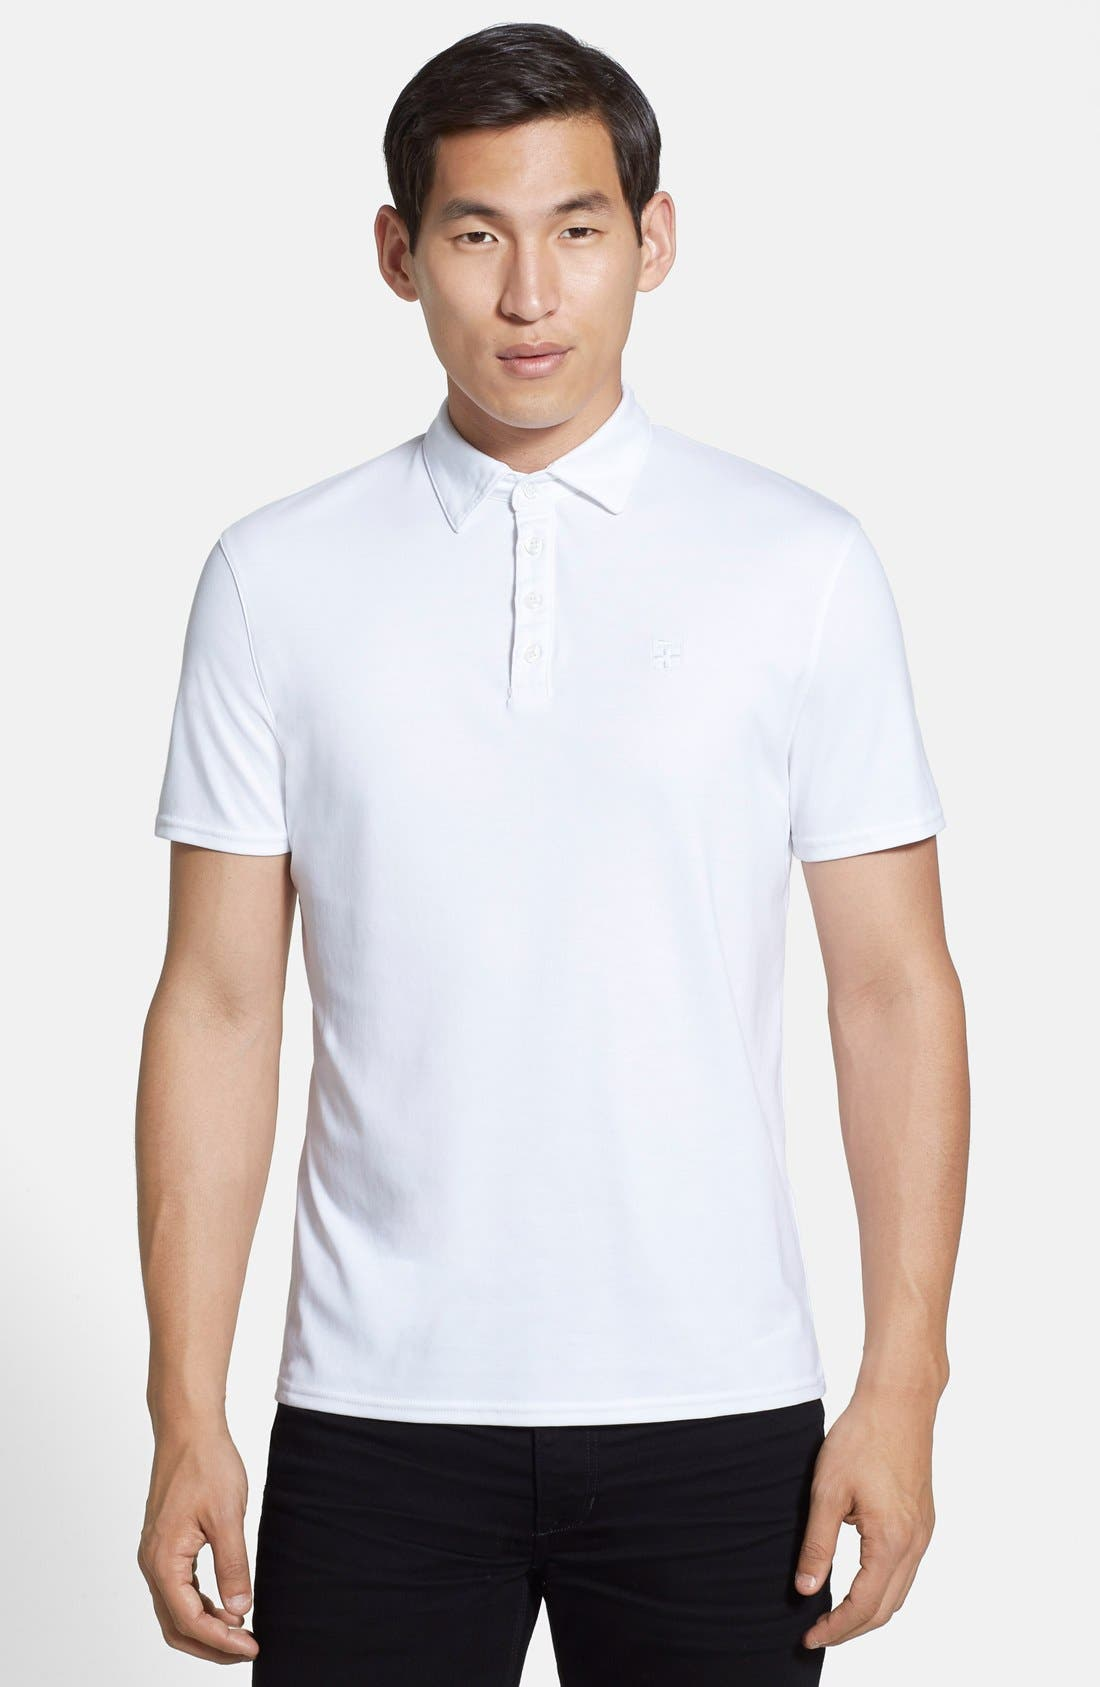 Main Image - Vince Camuto 'Crest' Slim Fit Polo